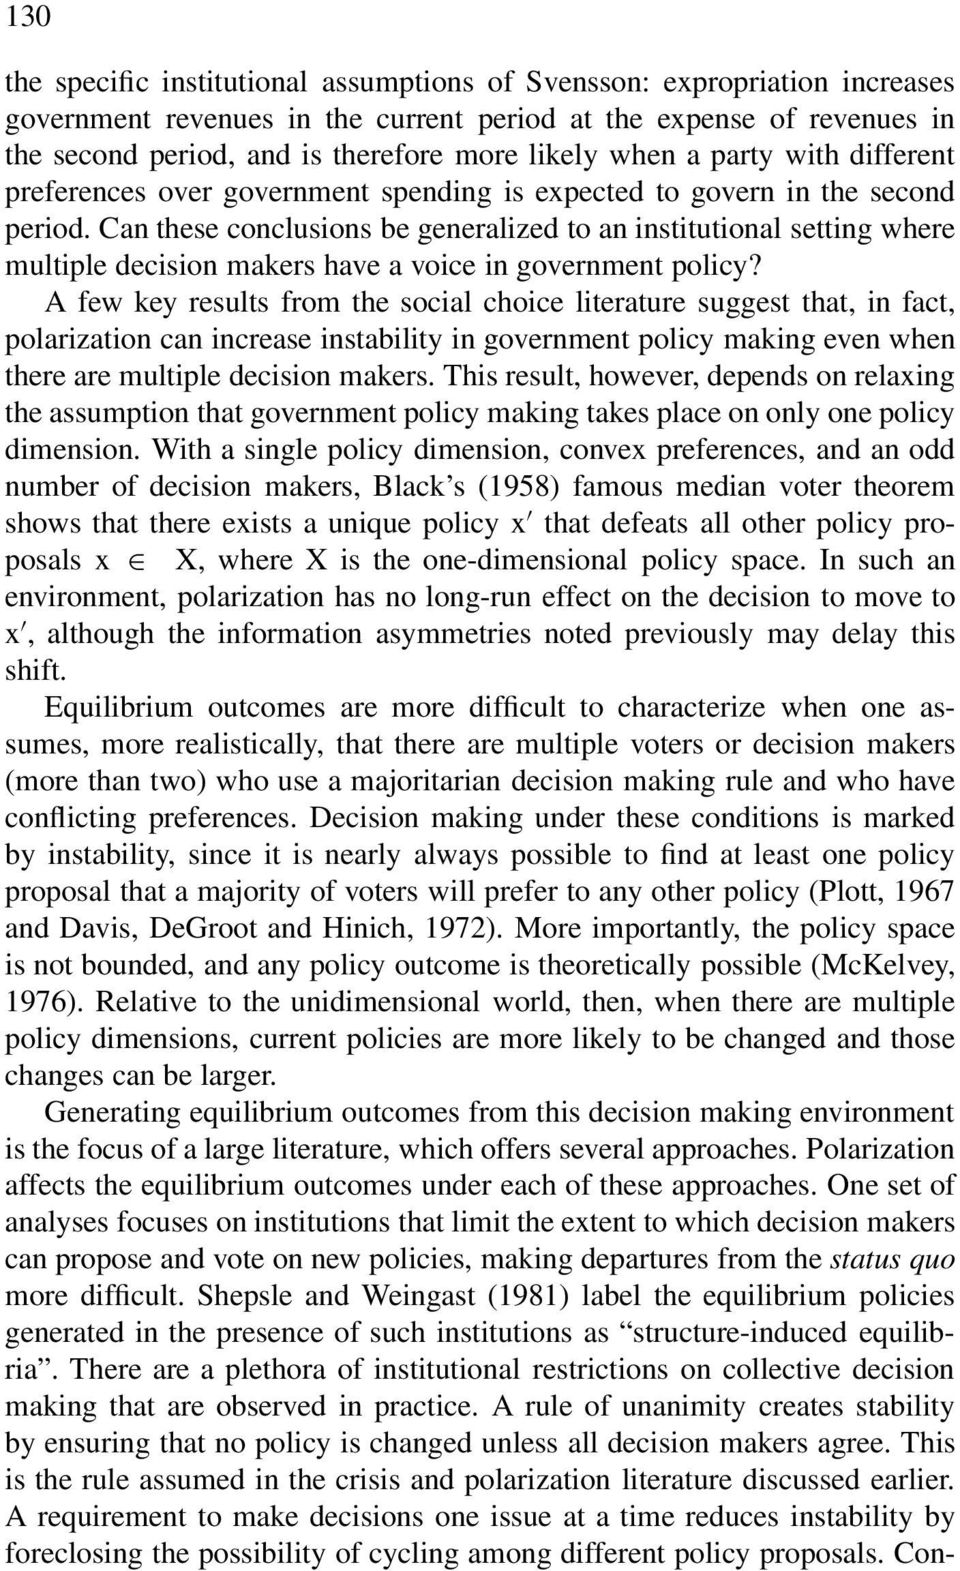 Can these conclusions be generalized to an institutional setting where multiple decision makers have a voice in government policy?